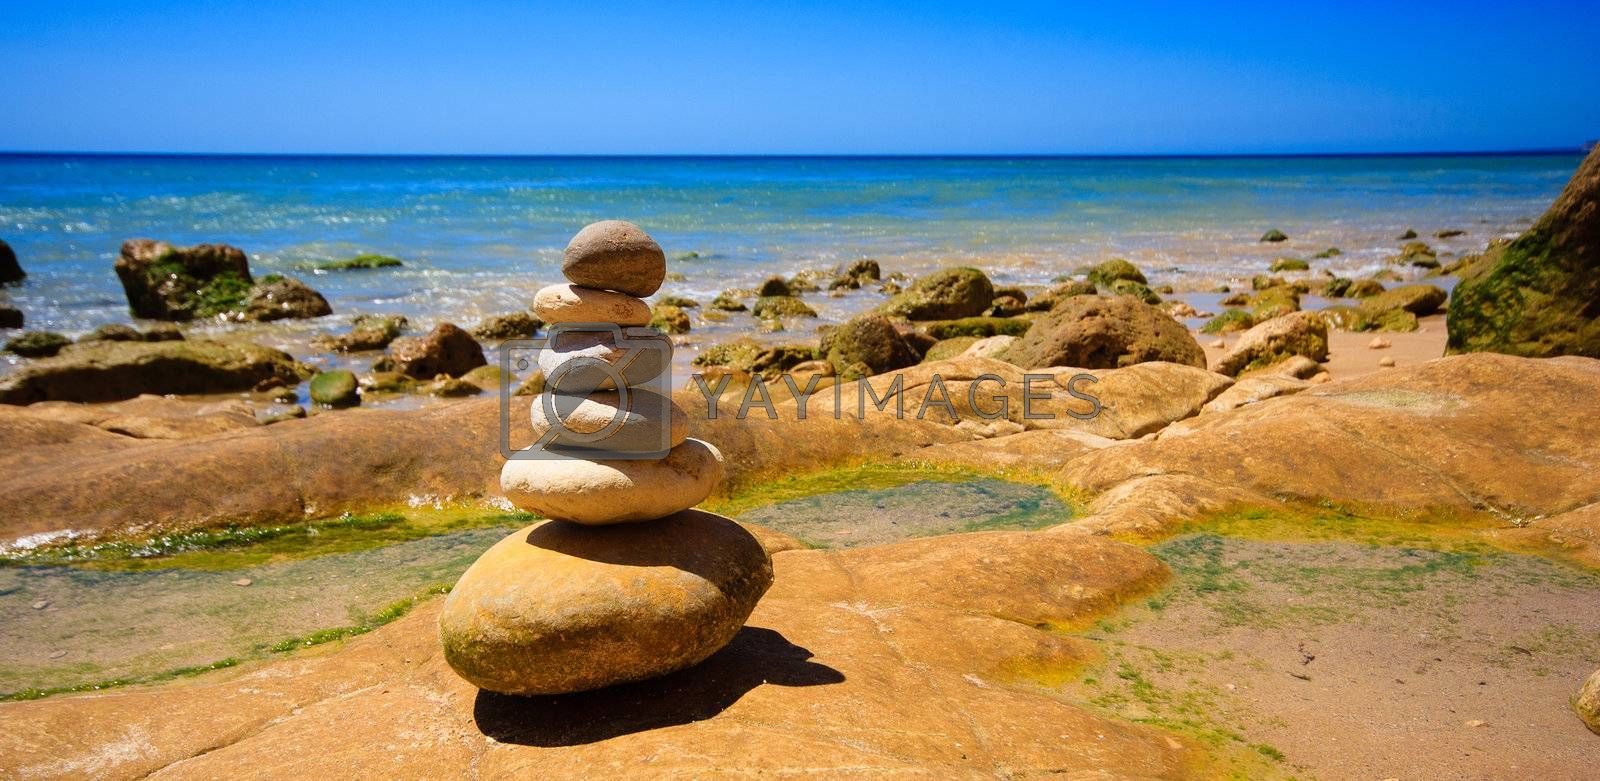 Royalty free image of stone collection by anobis